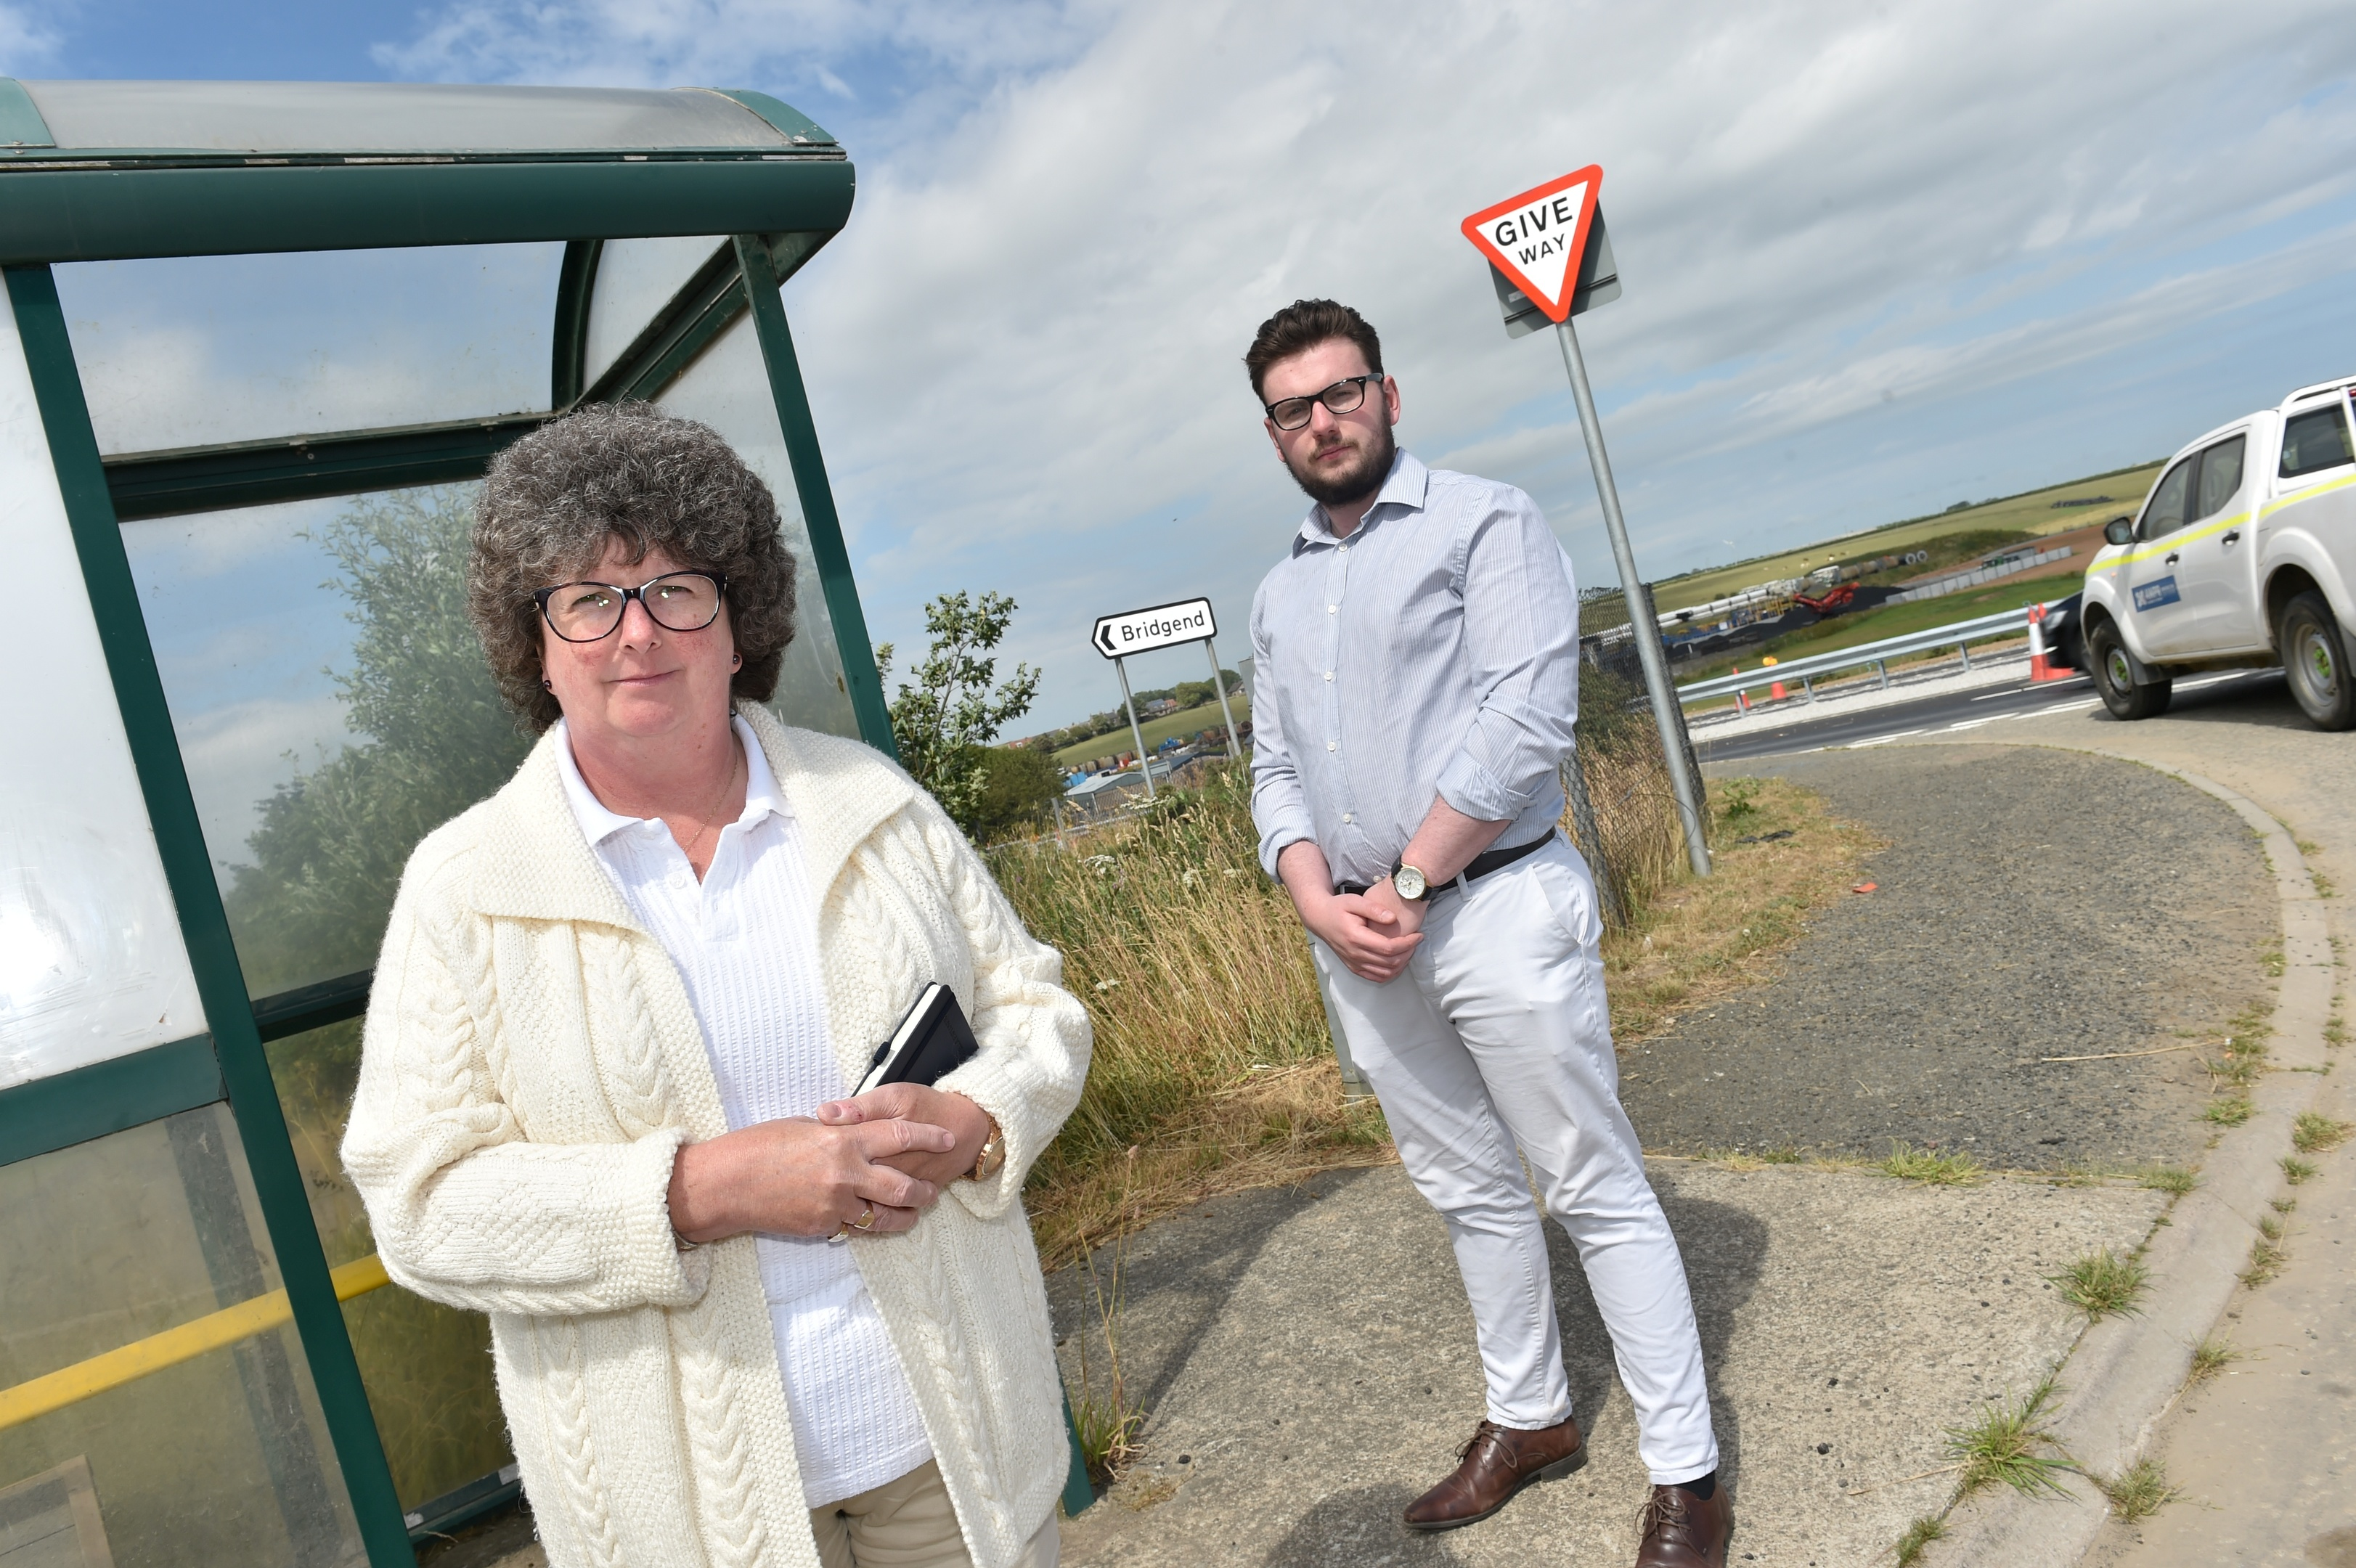 Residents of Bridgend near Ellon are angry that their bus stop has been moved further away as part of the AWPR upgrade. Cllr Gillian Owen and Alexander Owen have been campaigning on behalf of Colin Clark MP. Picture by COLIN RENNIE  July 13, 2018.